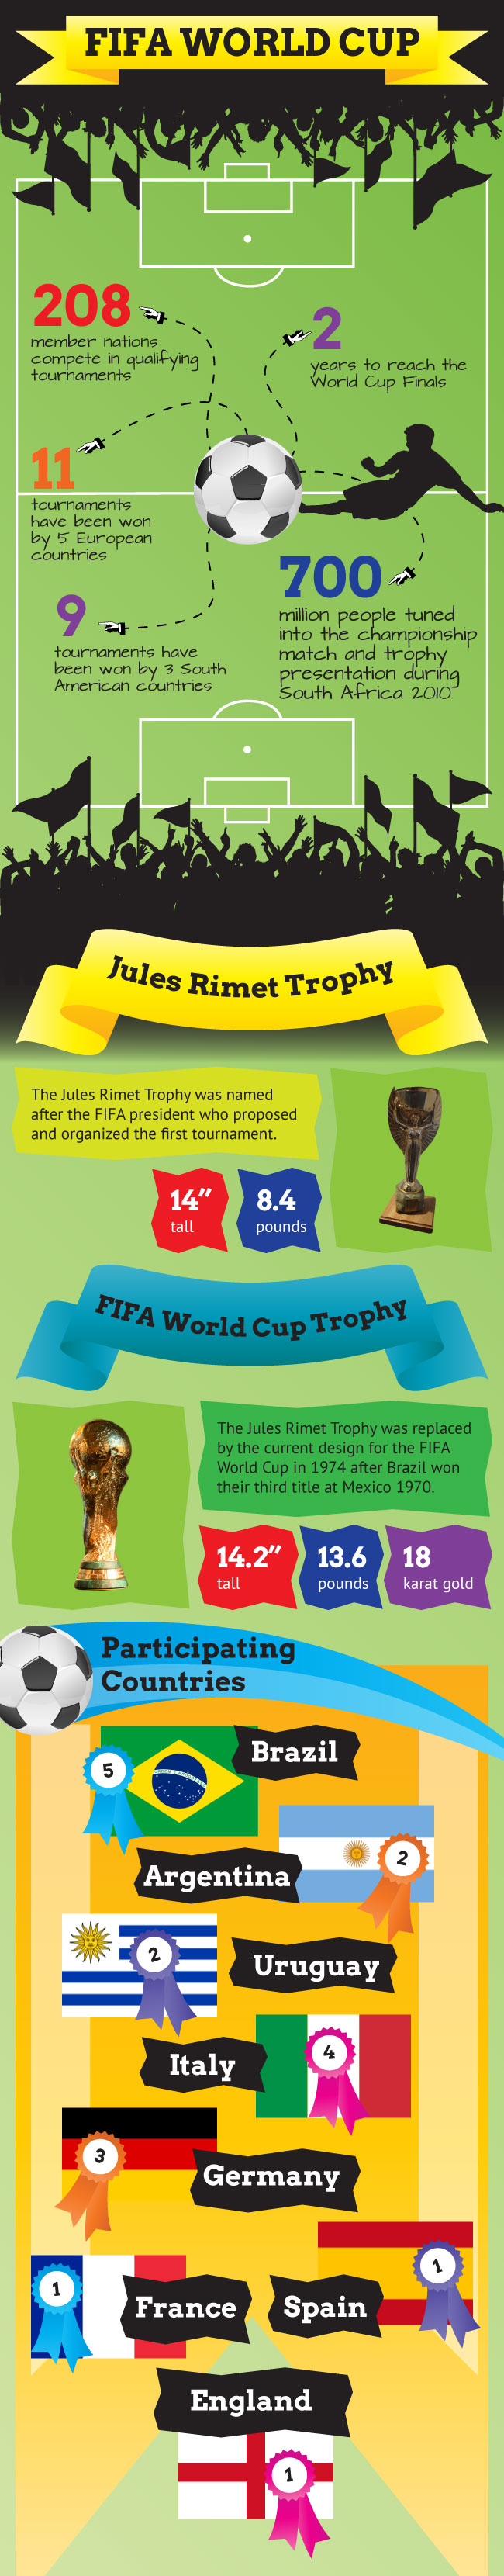 Clarabridge World Cup Infographic Named 3 On Survey Analytics Top 5 Infographics Of The Week Http Bit Ly Teaiie World Cup Fifa World Cup Infographic